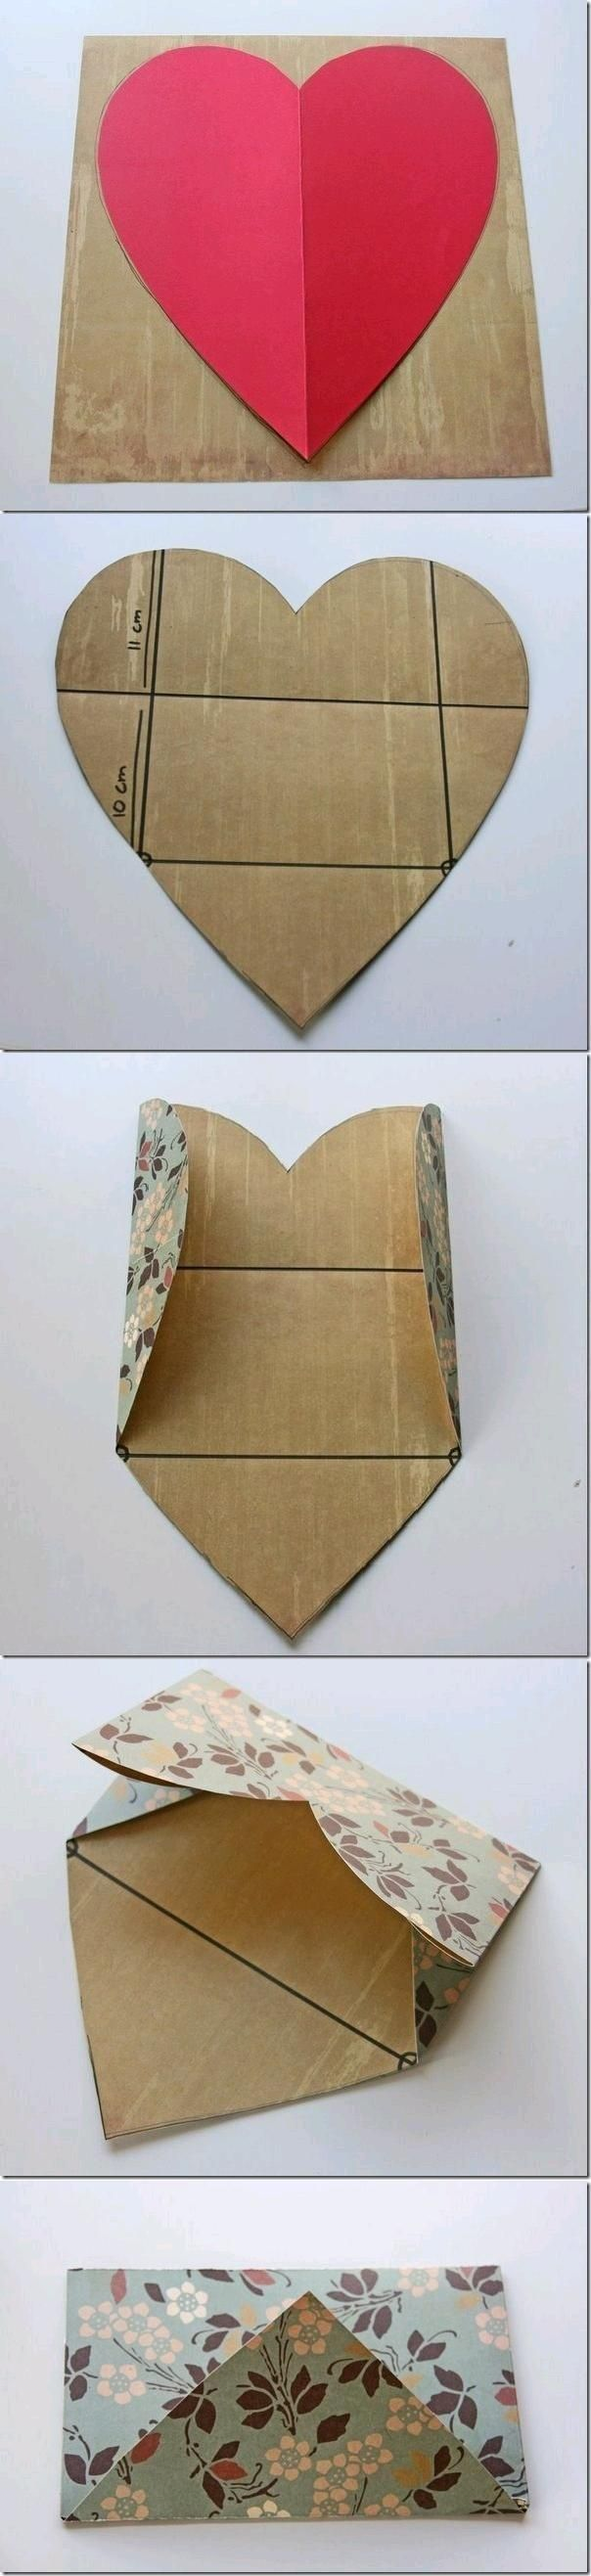 DIY Envelope from a Heart | Funny Facebook Pictures, Photos, Images, Videos, Fail, I Love You Quotes, and more...